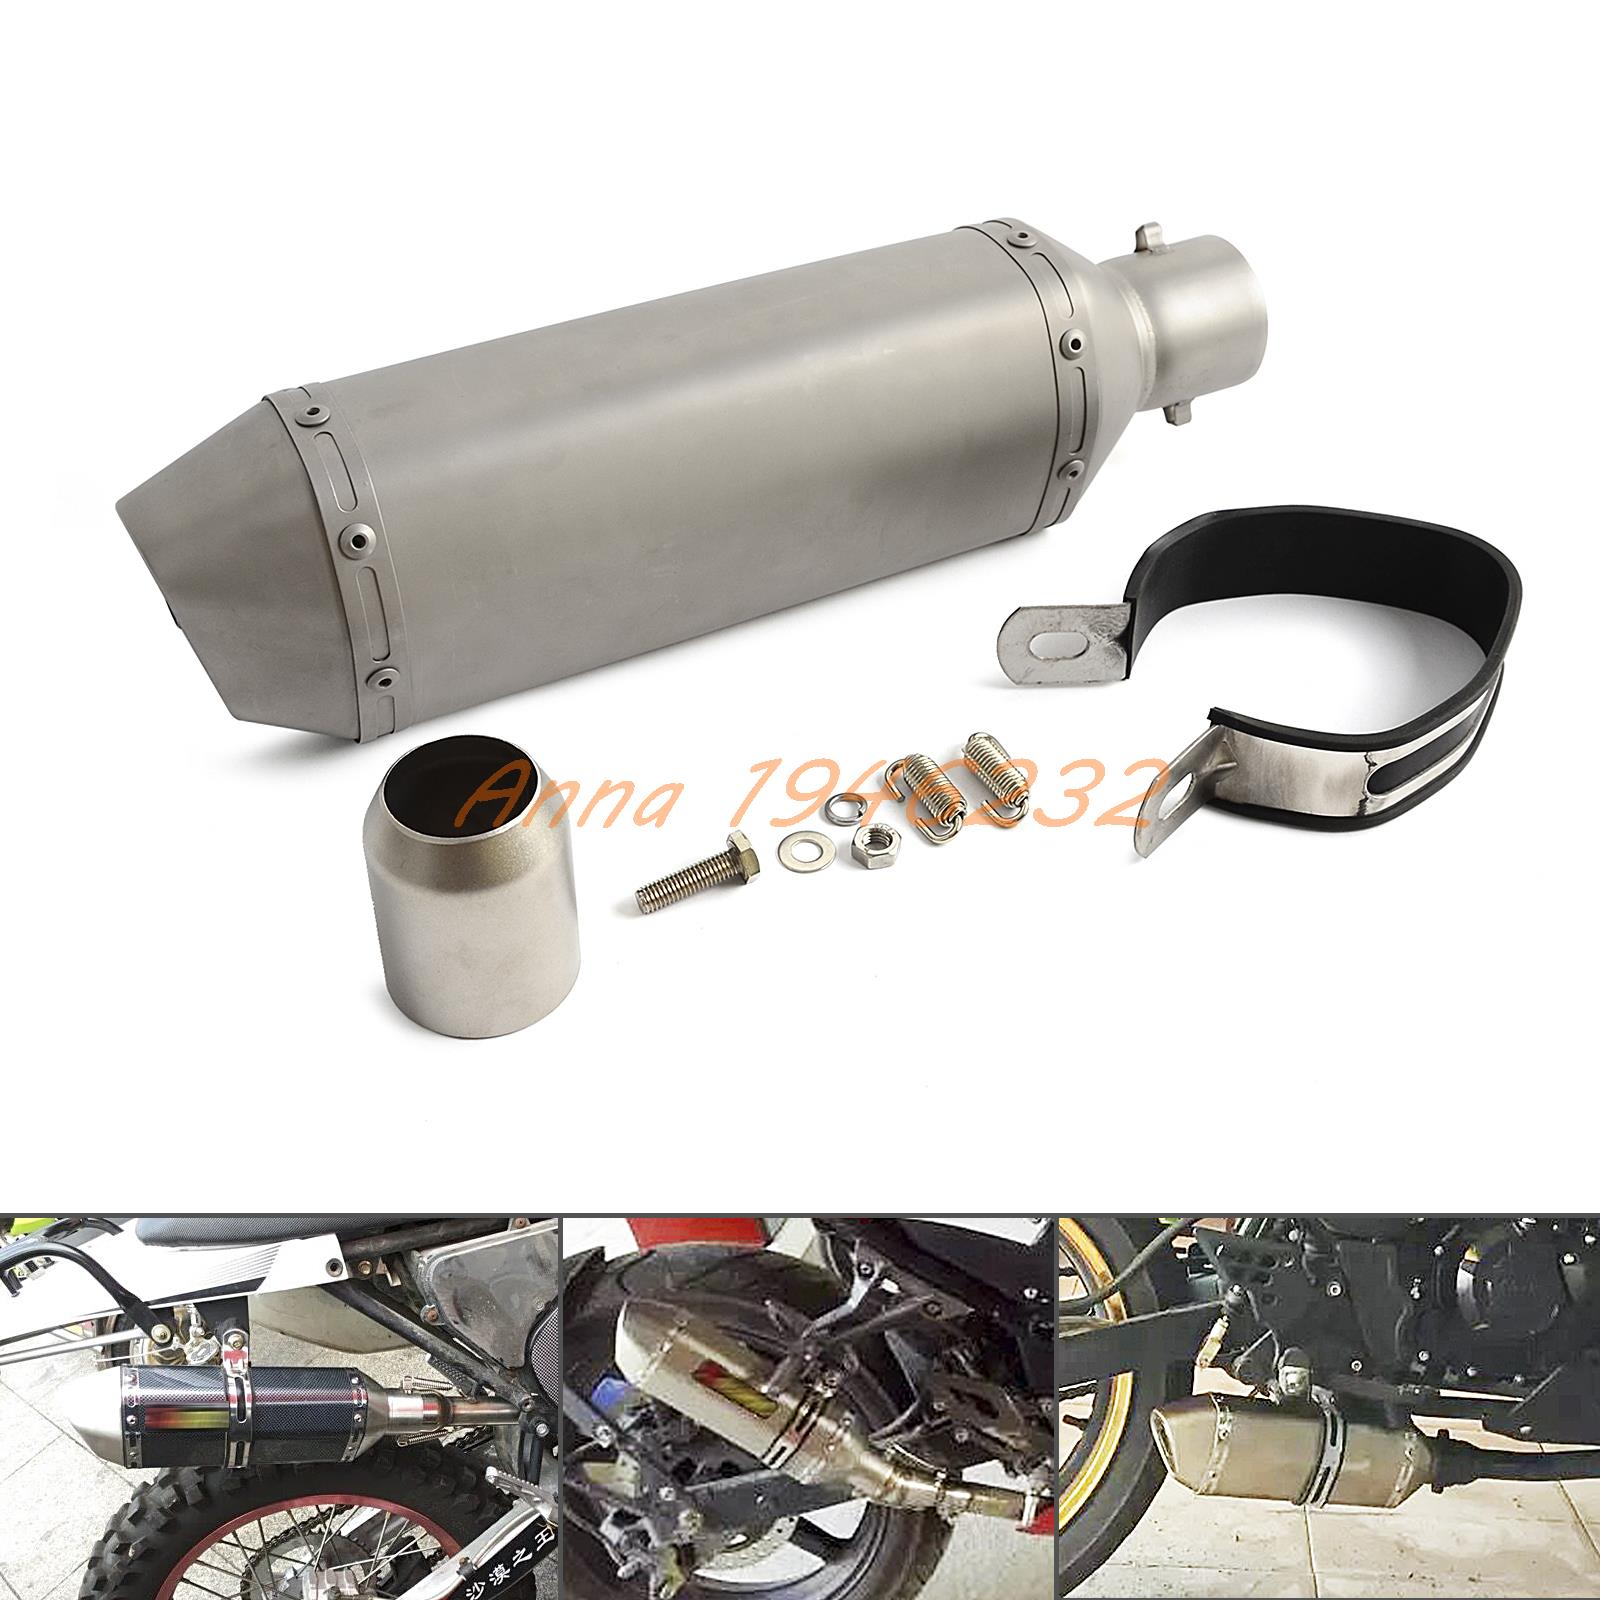 Street Bike Quad: Universal 38 51mm Exhaust Muffler With DB Killer For Dirt